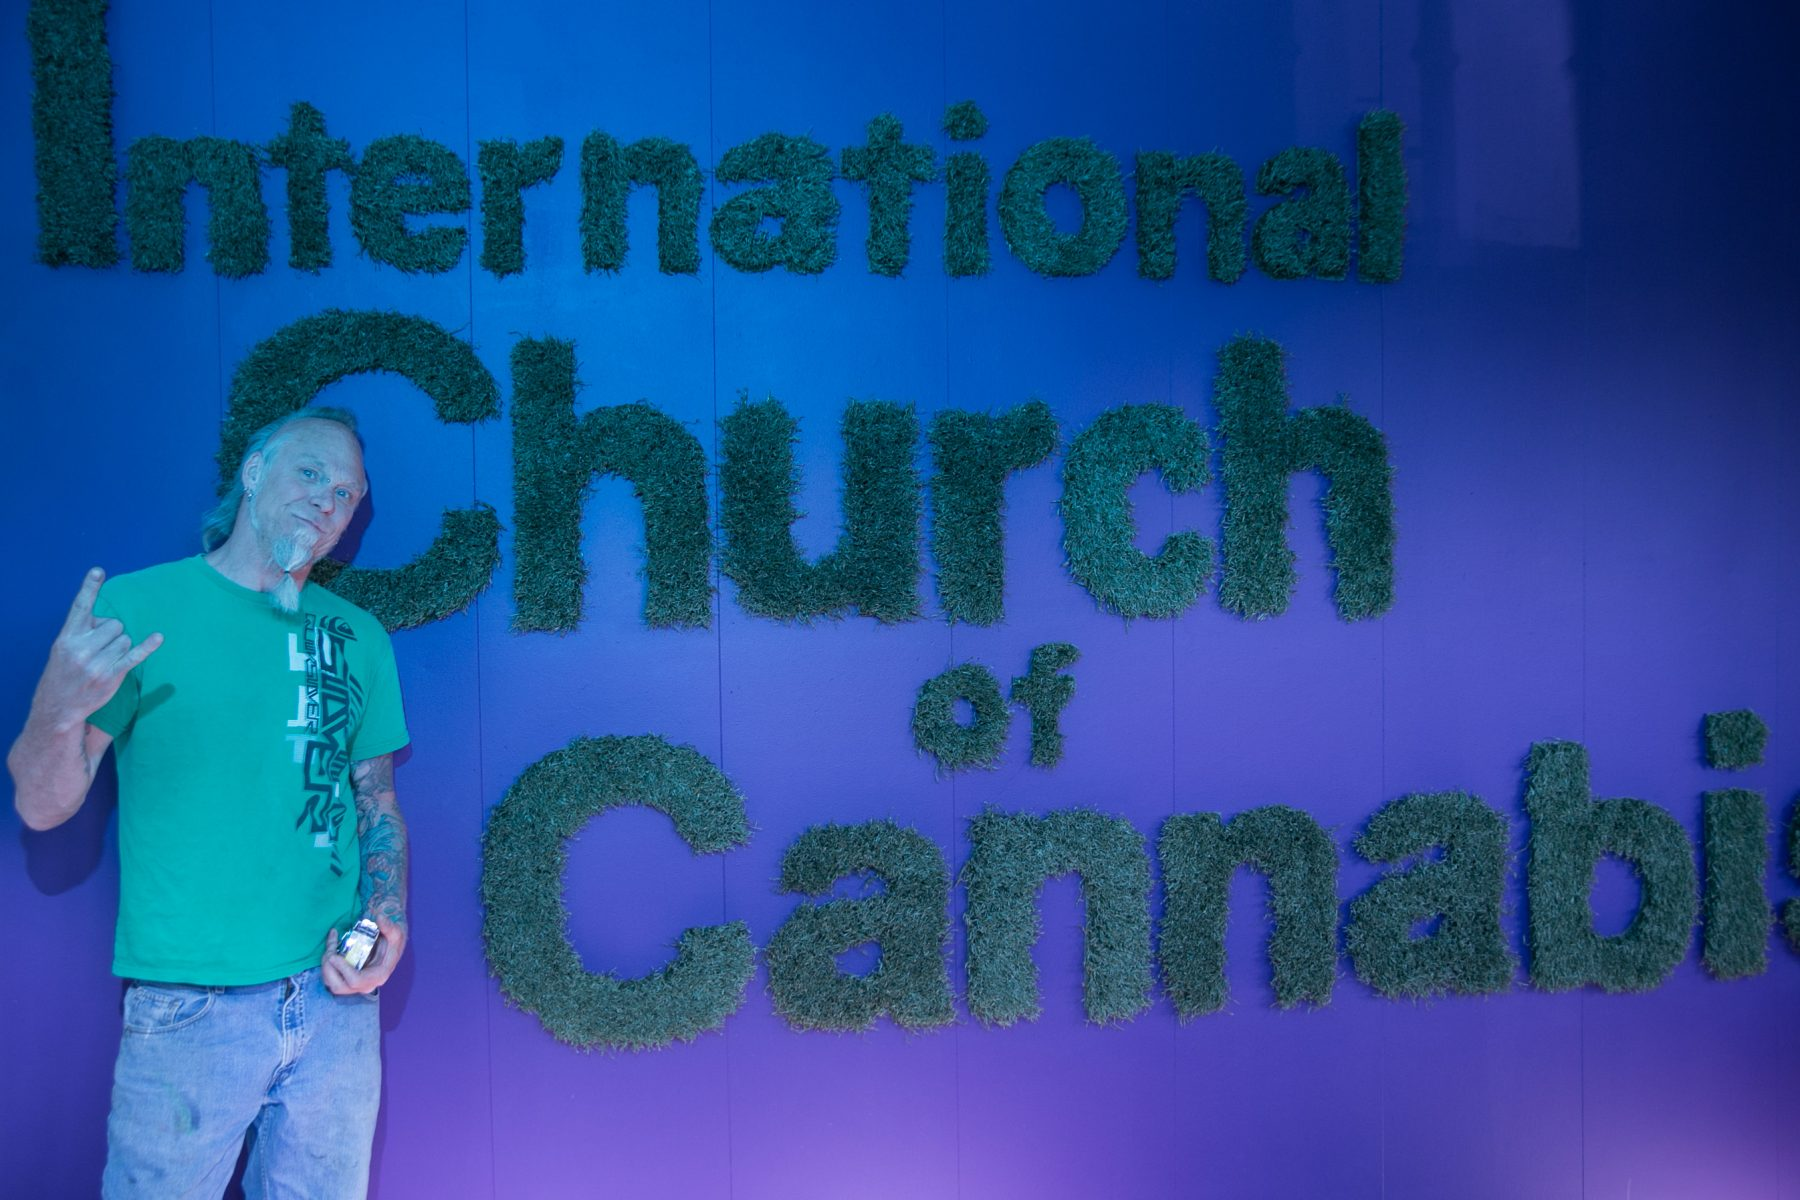 Dave Bouge presents the logo for the International Church of Cannabis he created